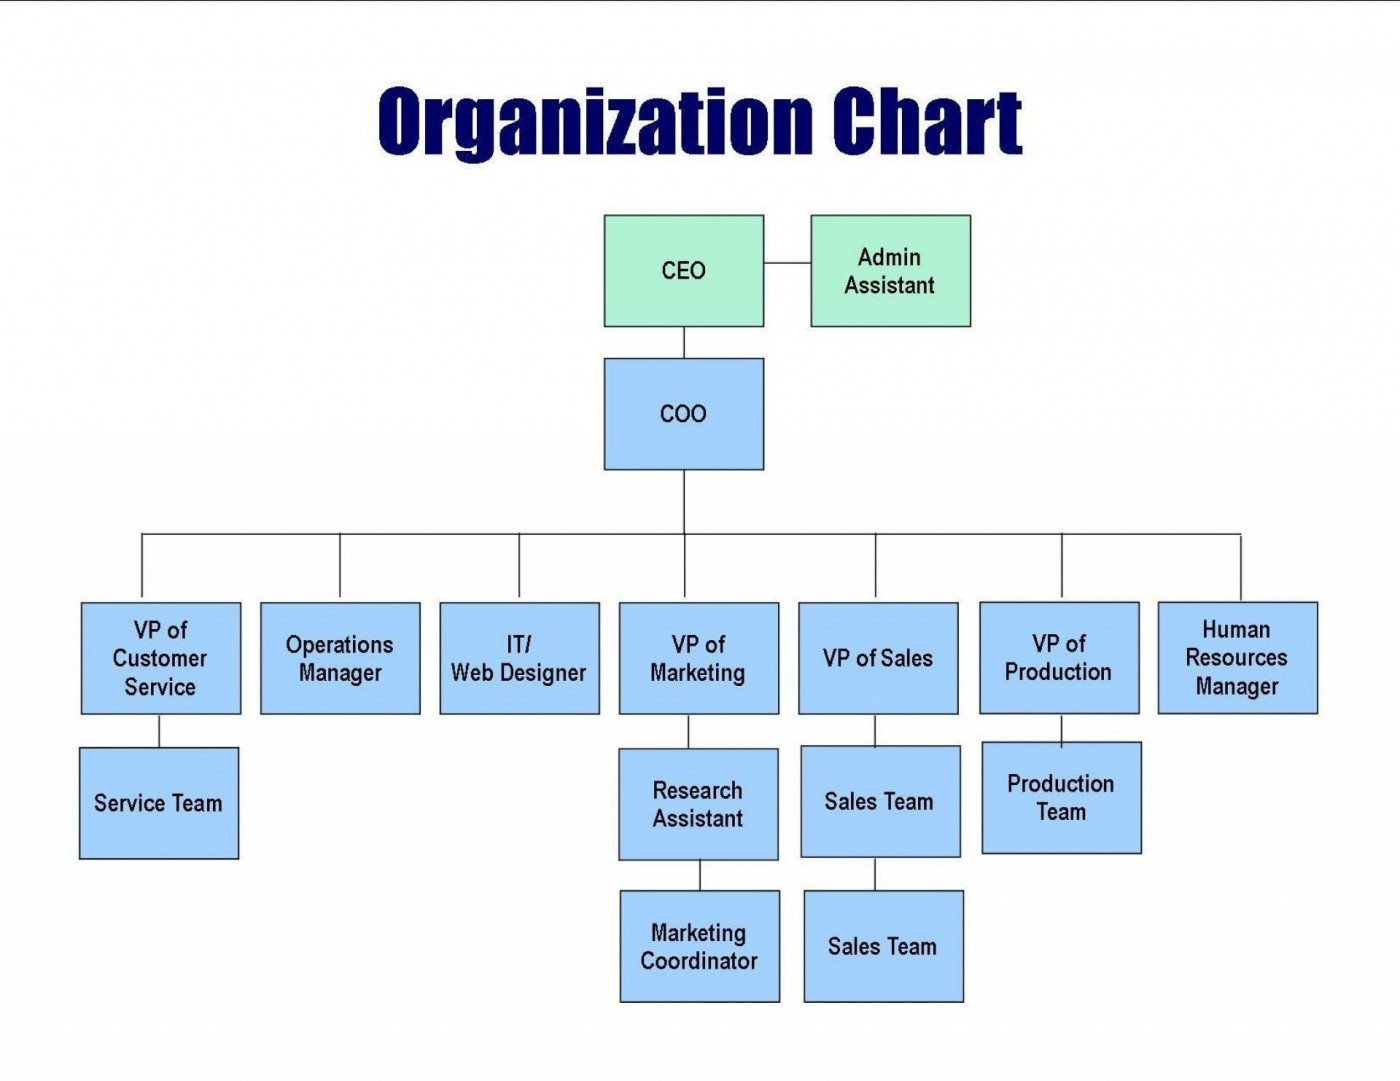 009 Unbelievable Organization Chart Template Word 2013 Photo  Organizational Free1400